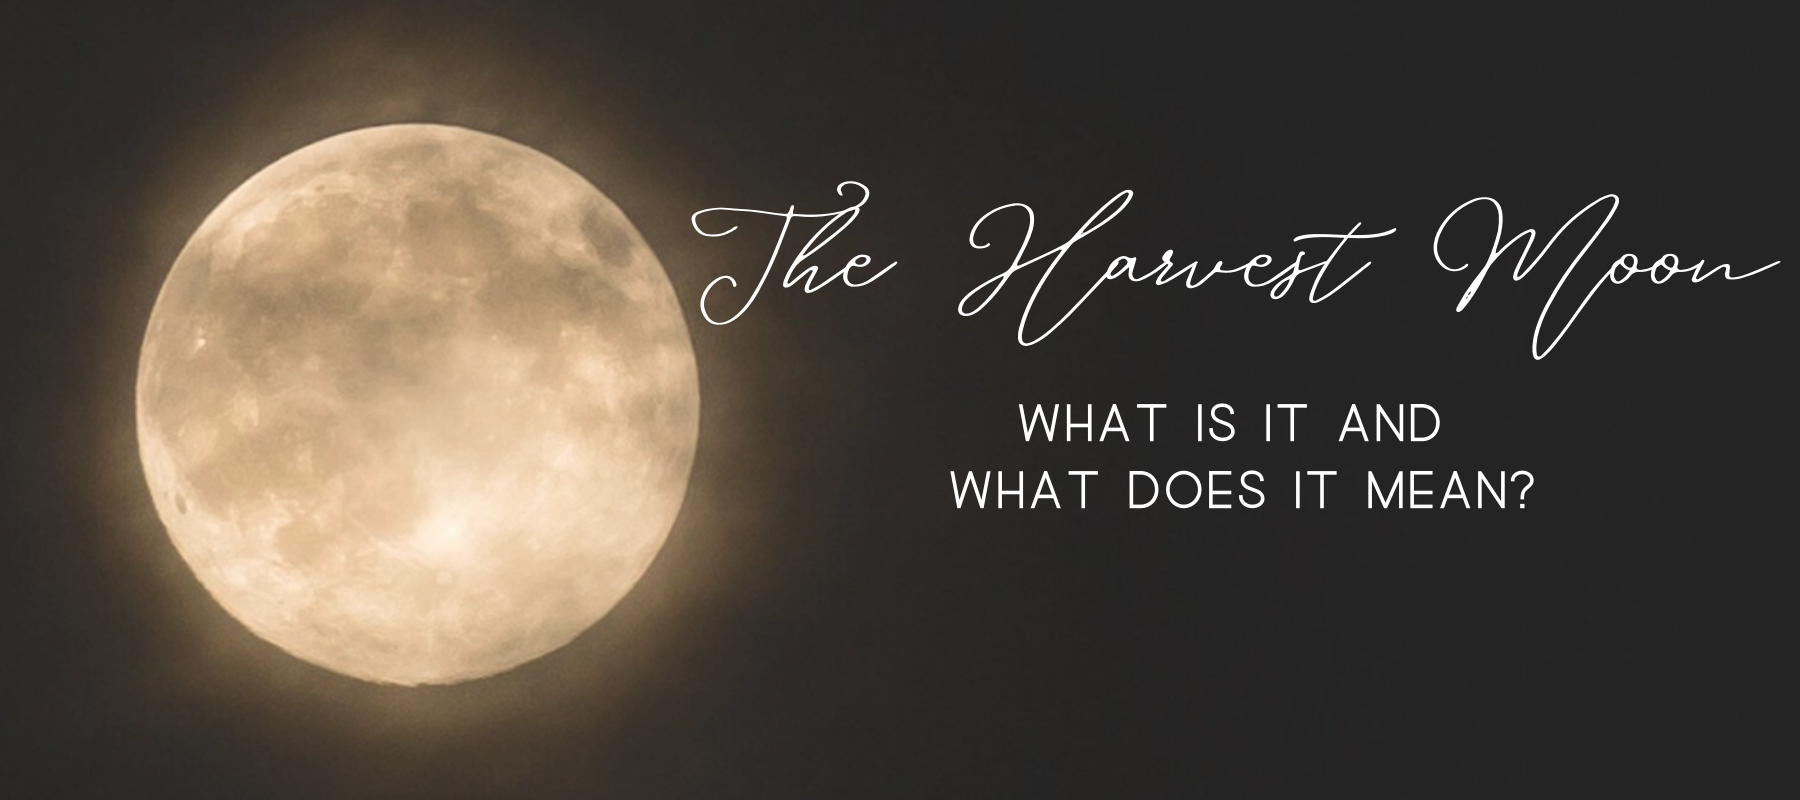 The Harvest Moon | What Is It and What Does It Mean?